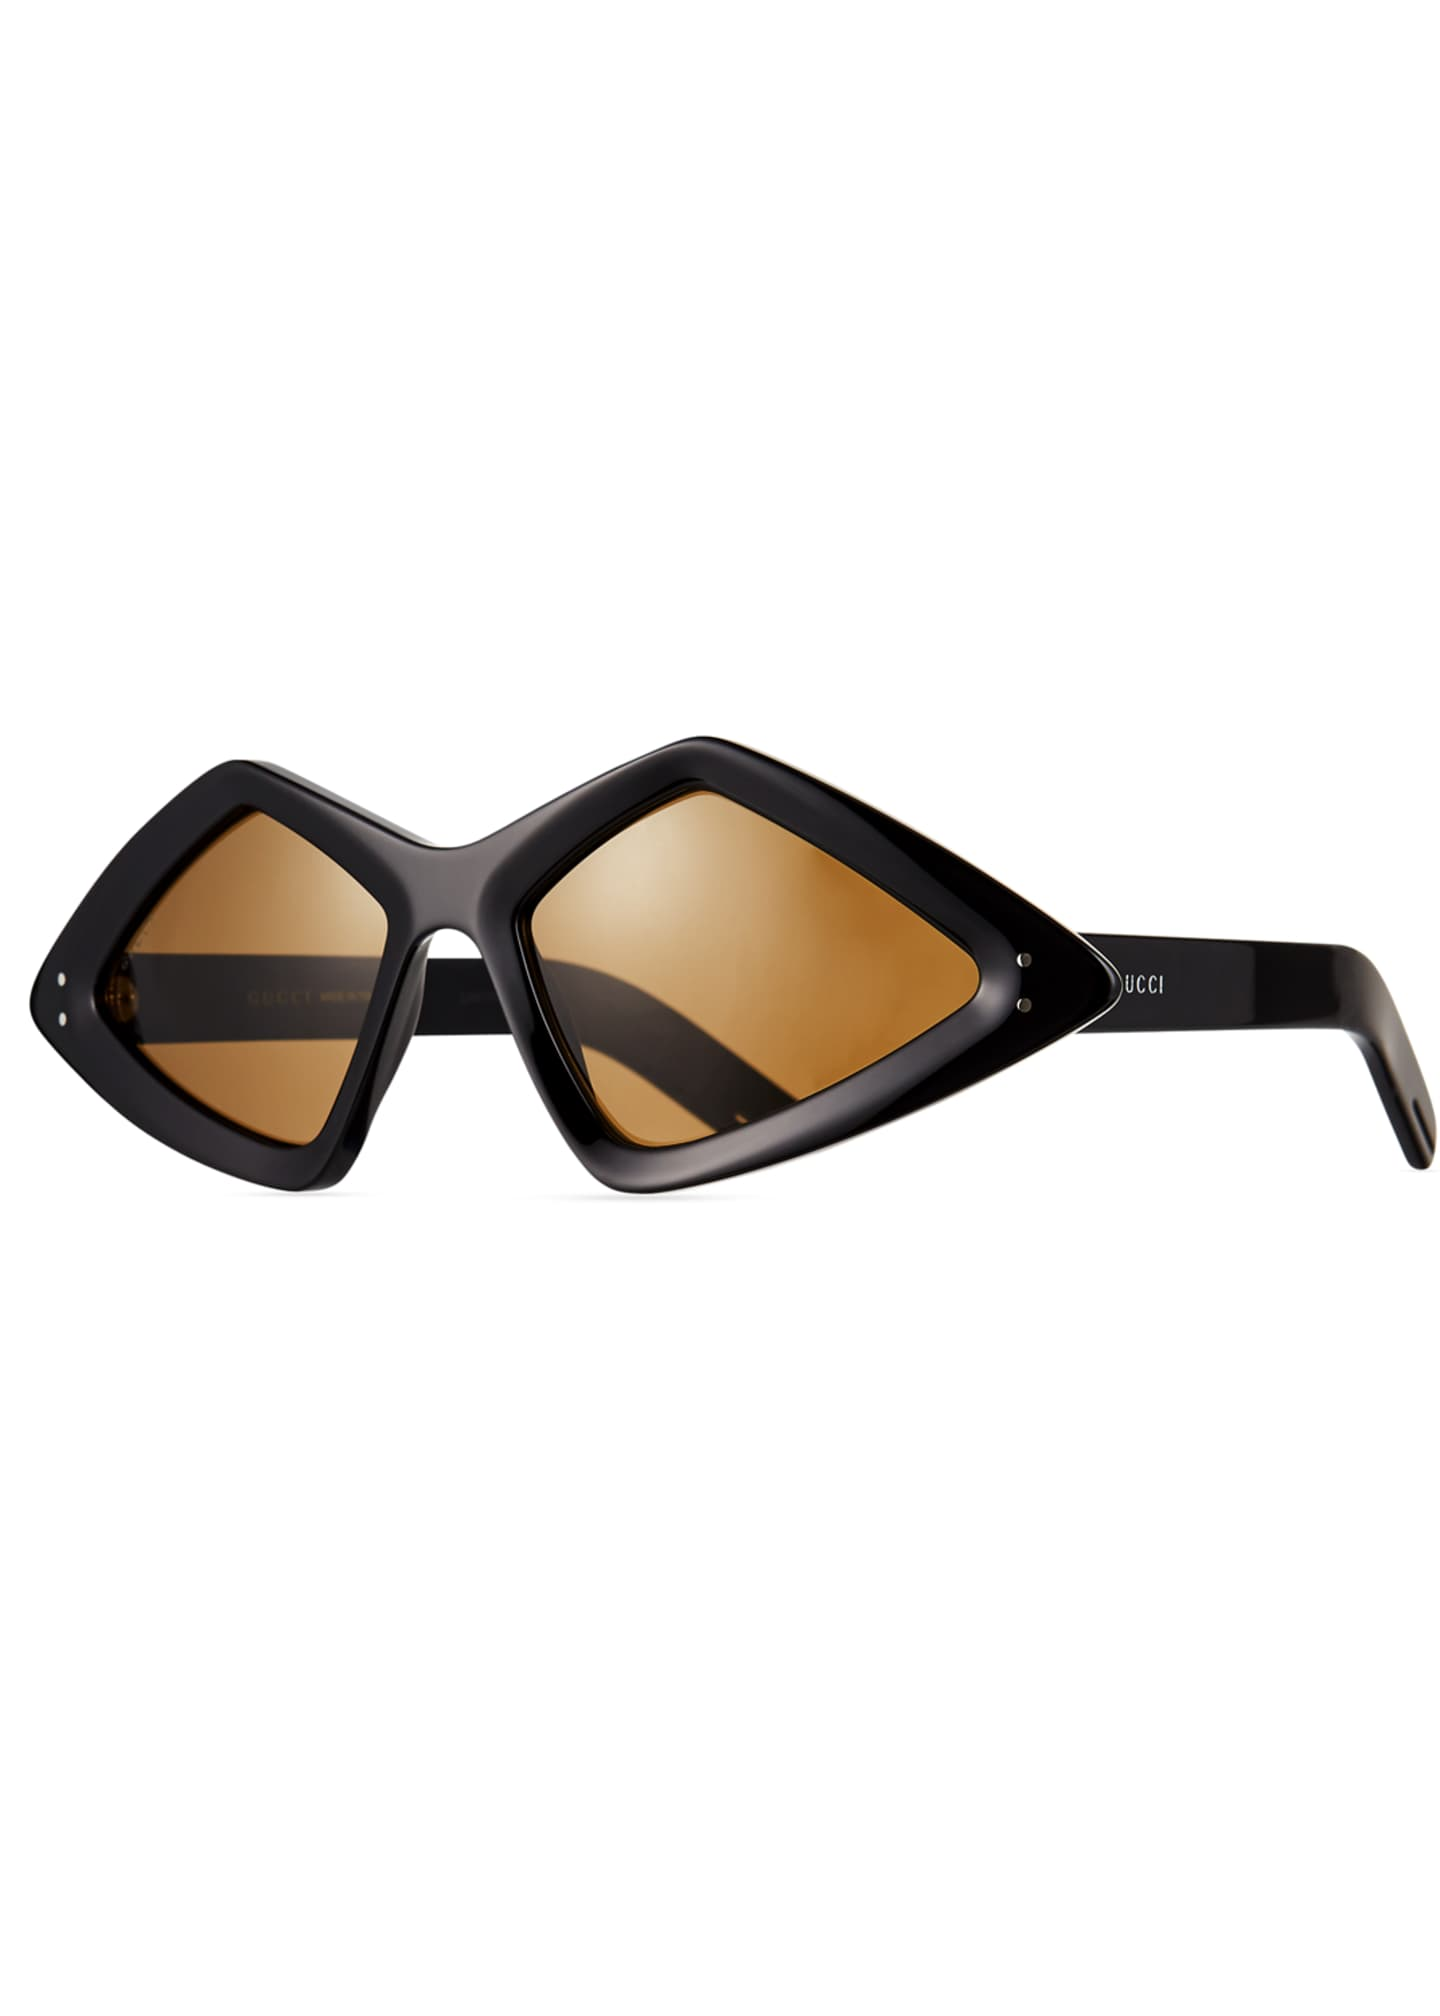 Gucci Men's Geometric Acetate Sunglasses